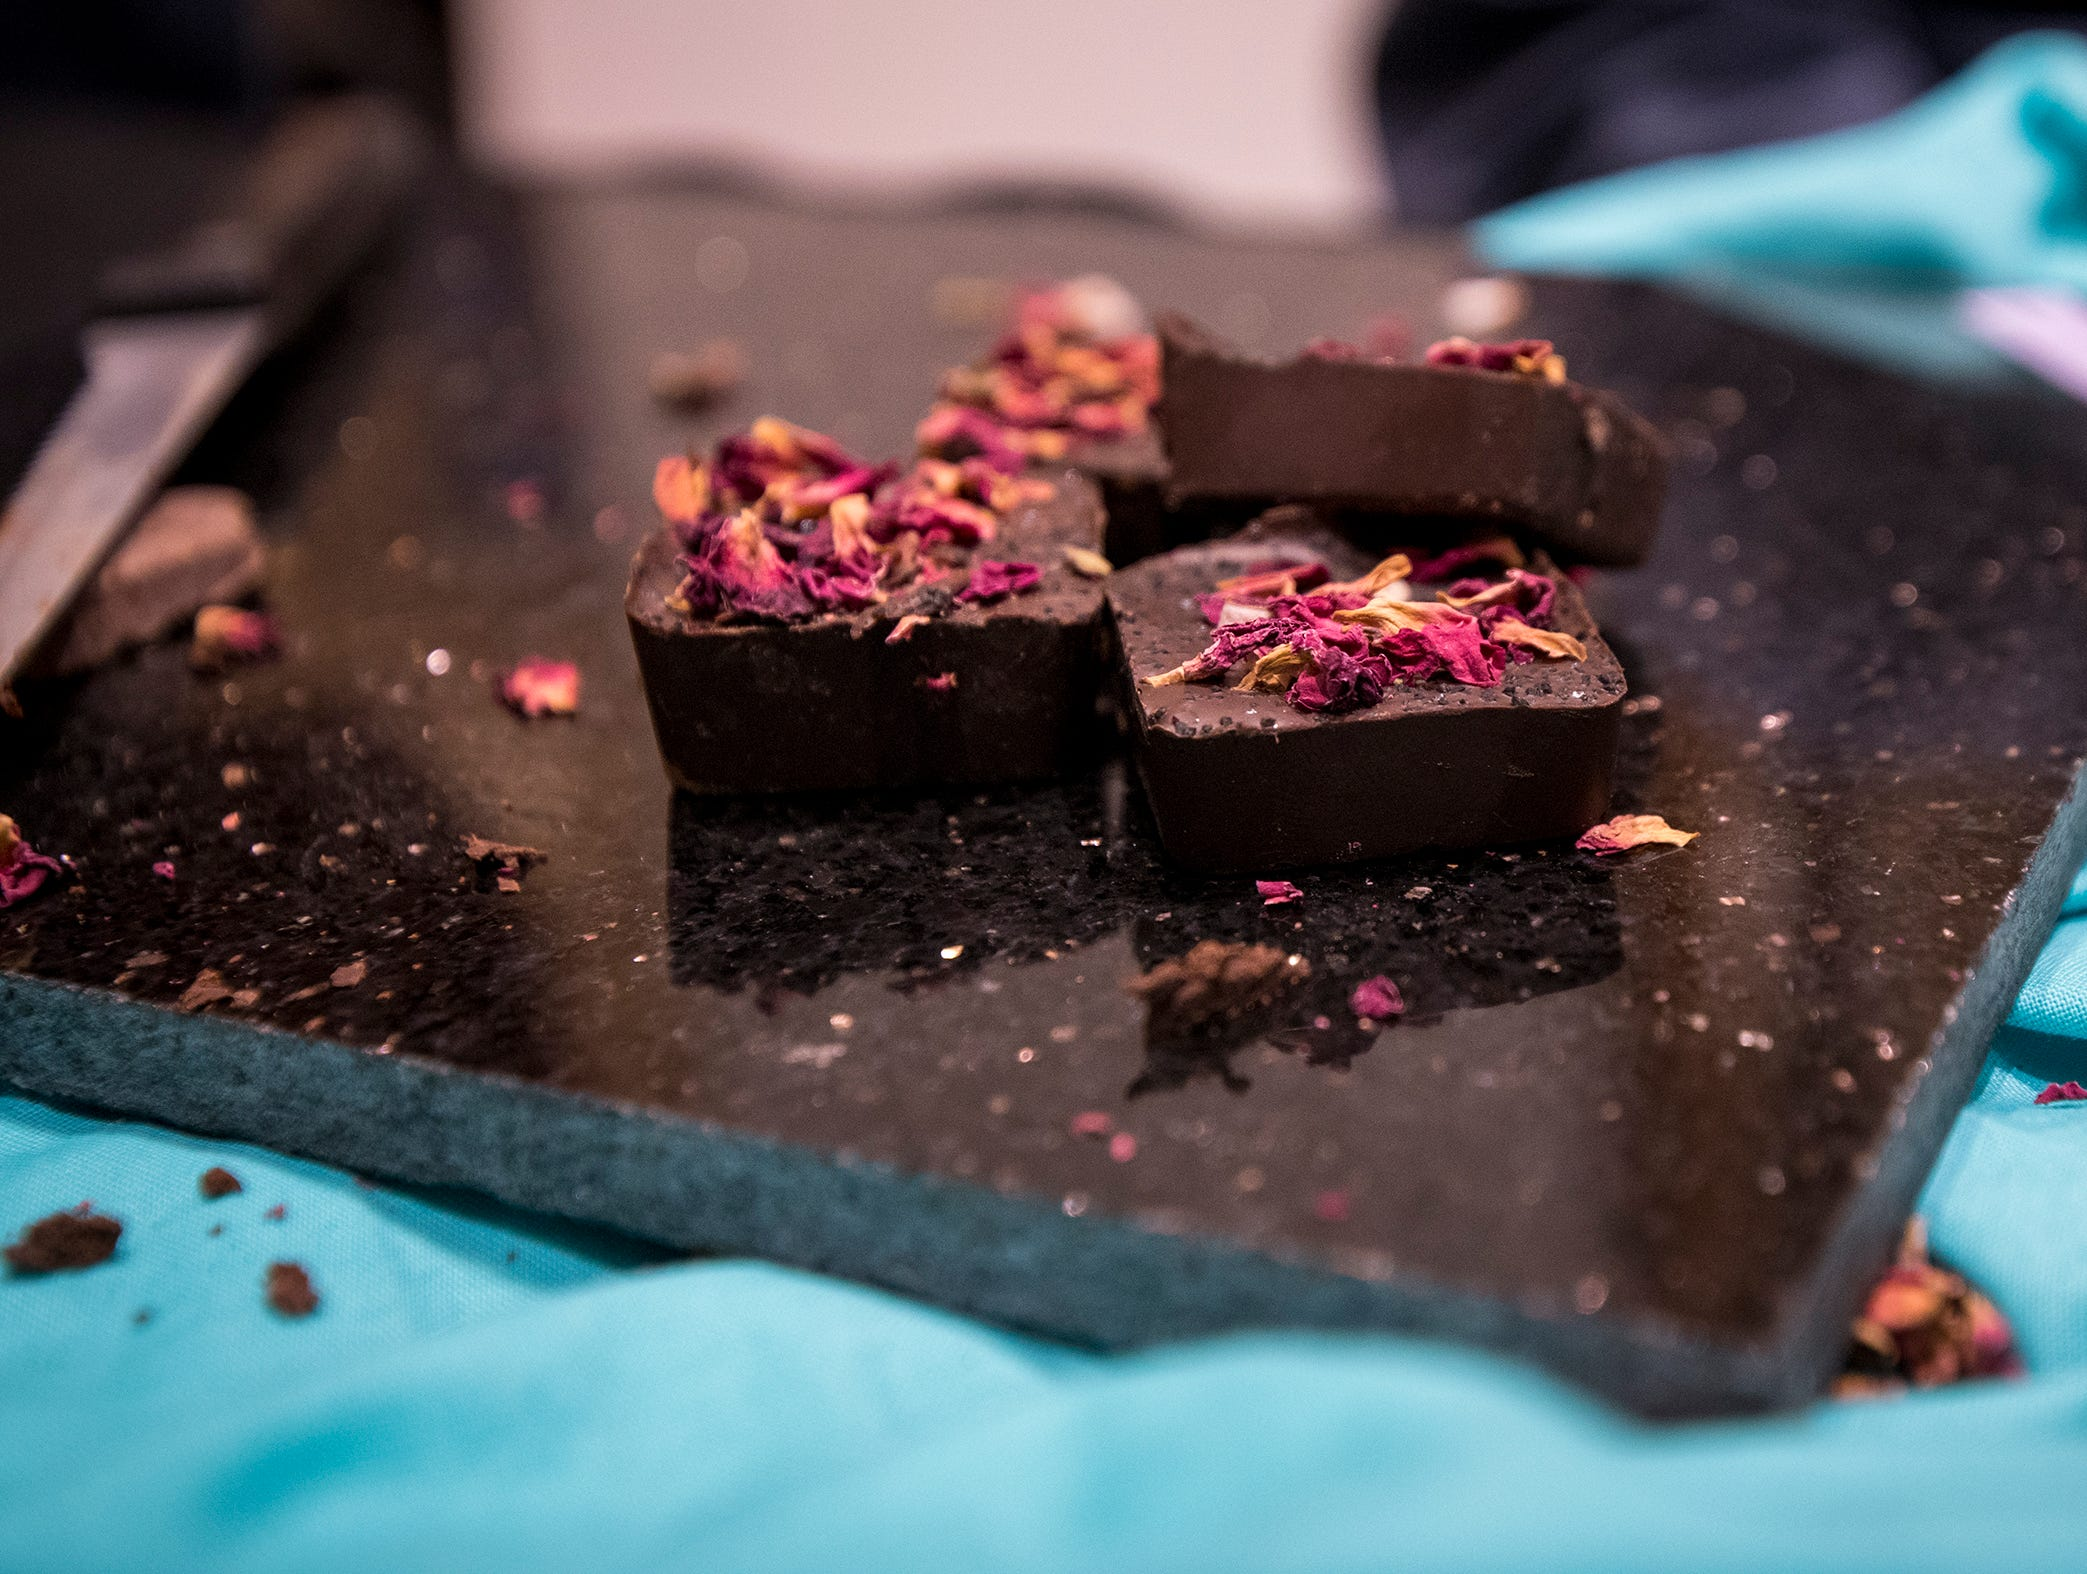 Samples of Delicieux vegan chocolate are available for guests during Art After Dark at the Cincinnati Art Museum Friday, January 25, 2019 in Cincinnati, Ohio.